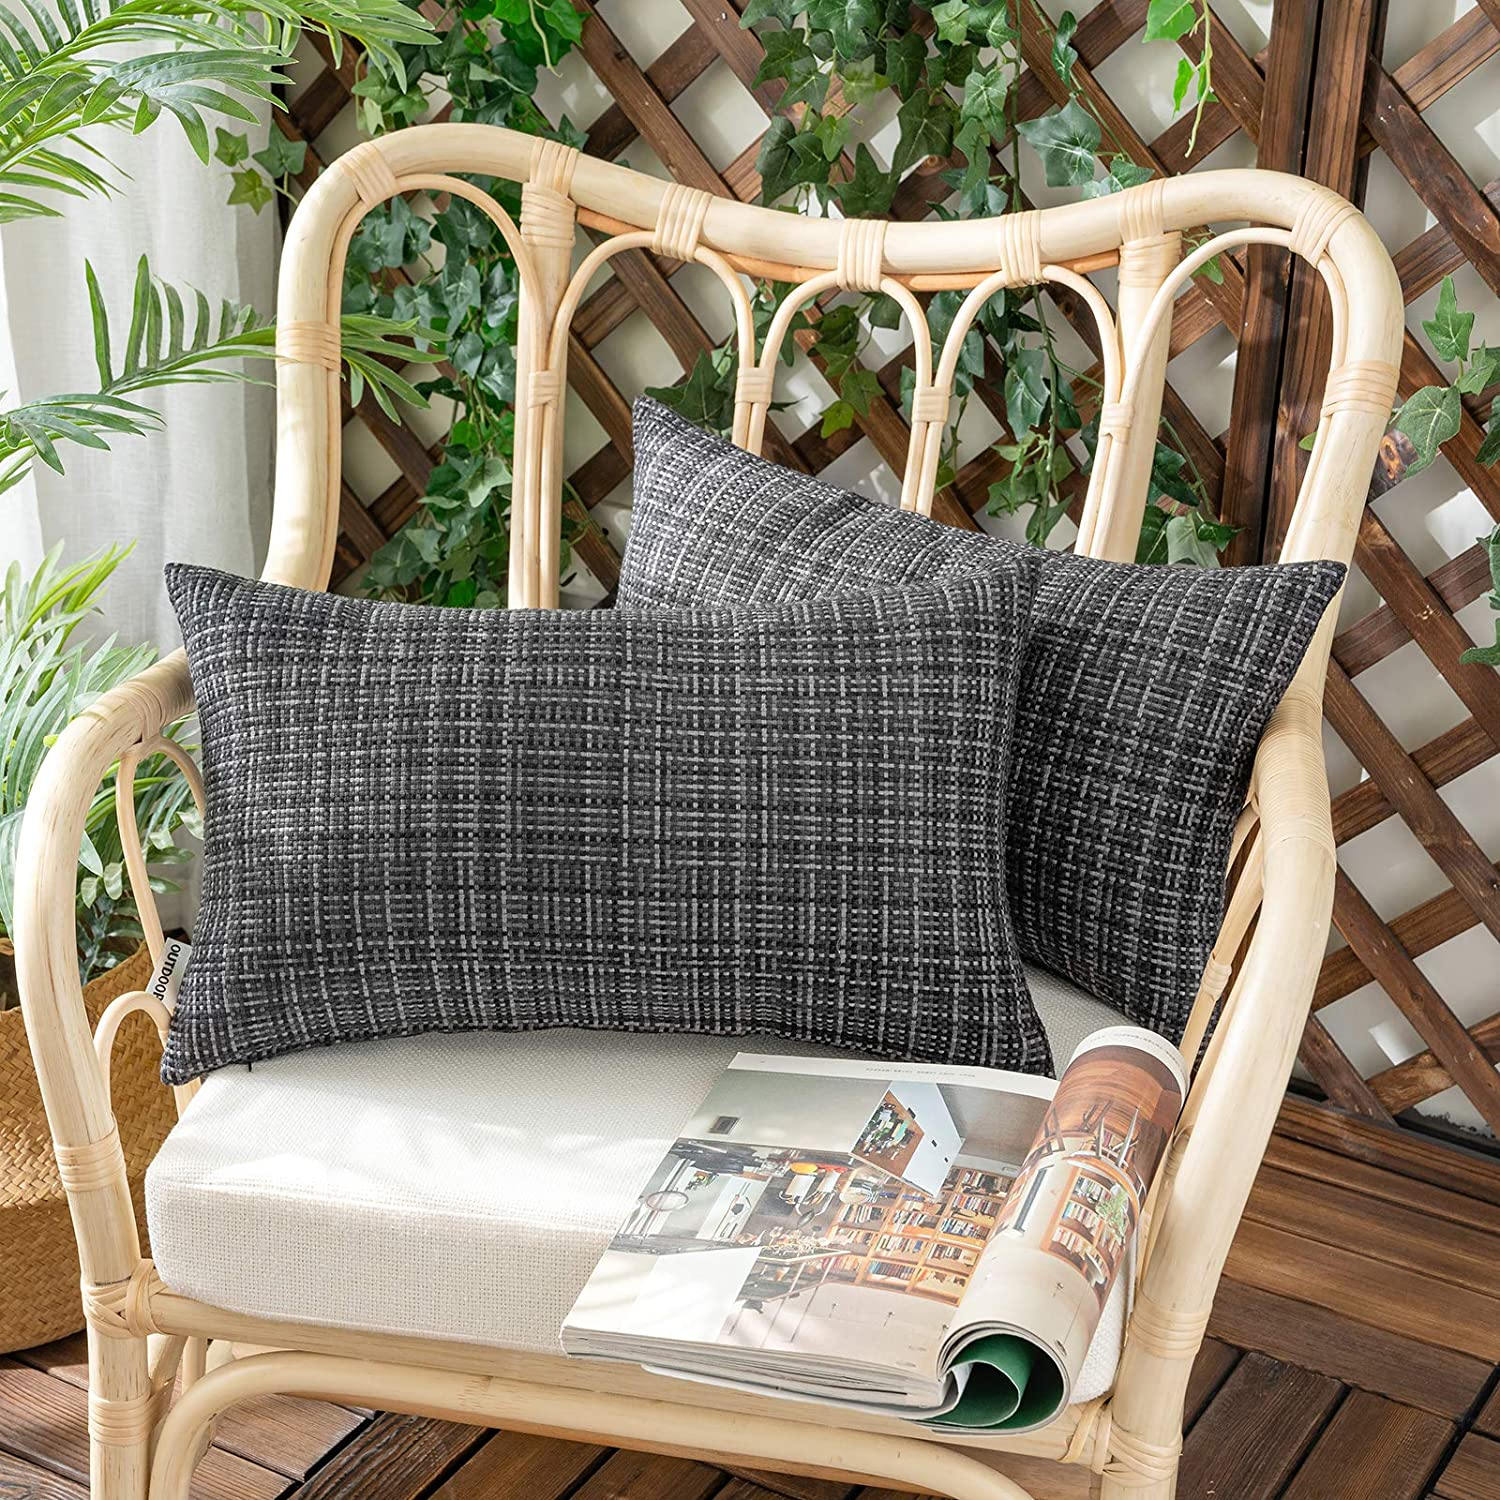 Woaboy Set of 2 Outdoor Waterproof Throw Pillow Covers Decorative Farmhouse Water Resistant Solid Cushion Cases for Patio Garden Sofa Chairs Black 12x20 inch